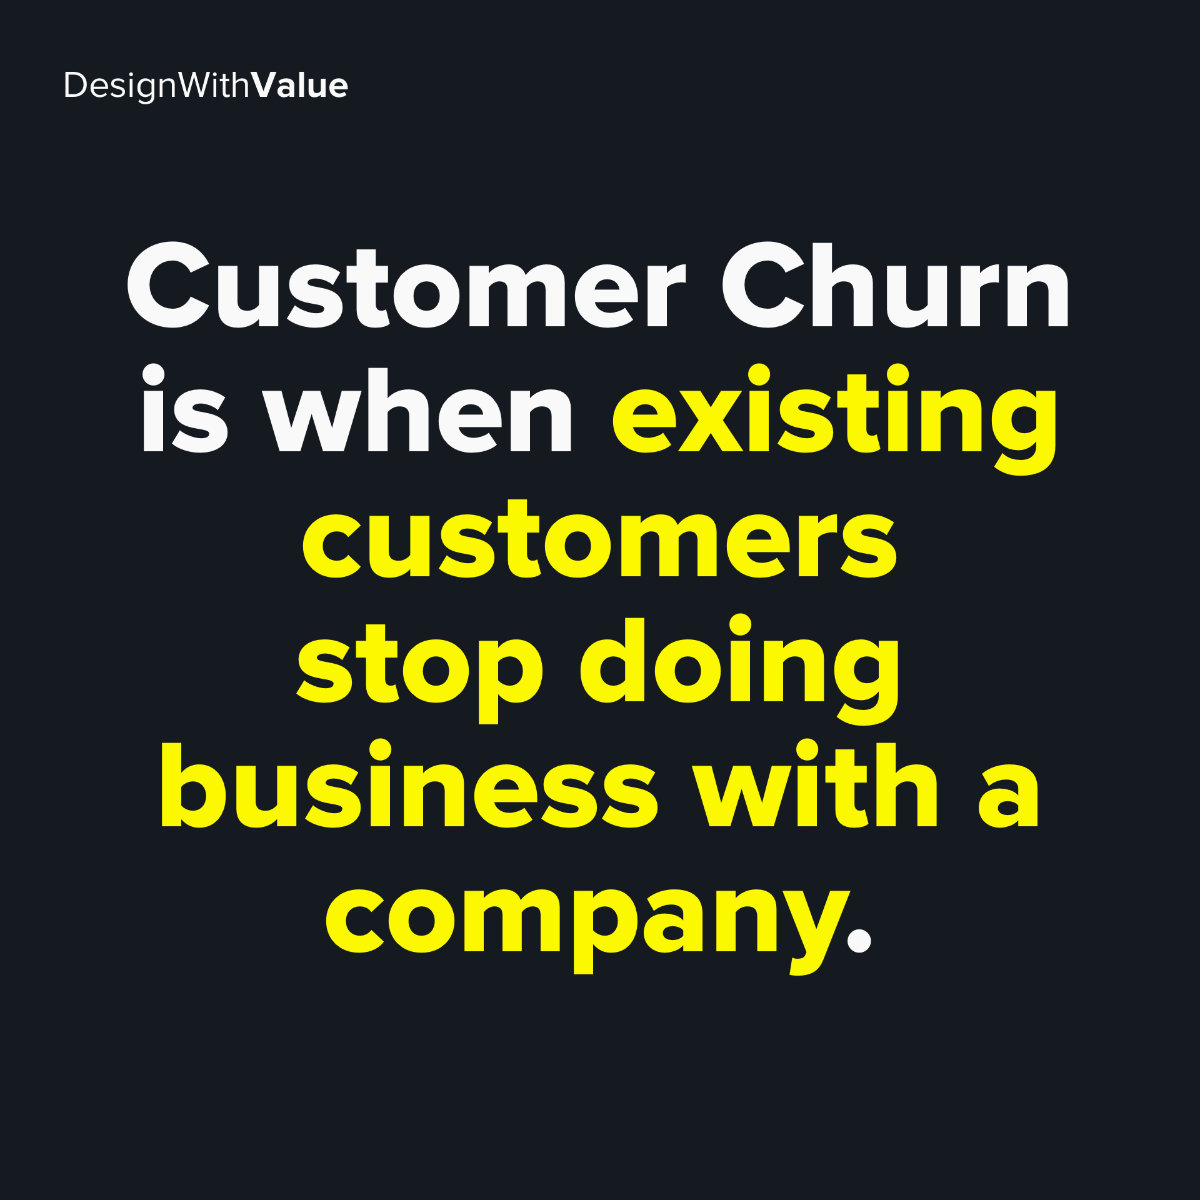 Customer churn is when existing customers stop doing business with a company